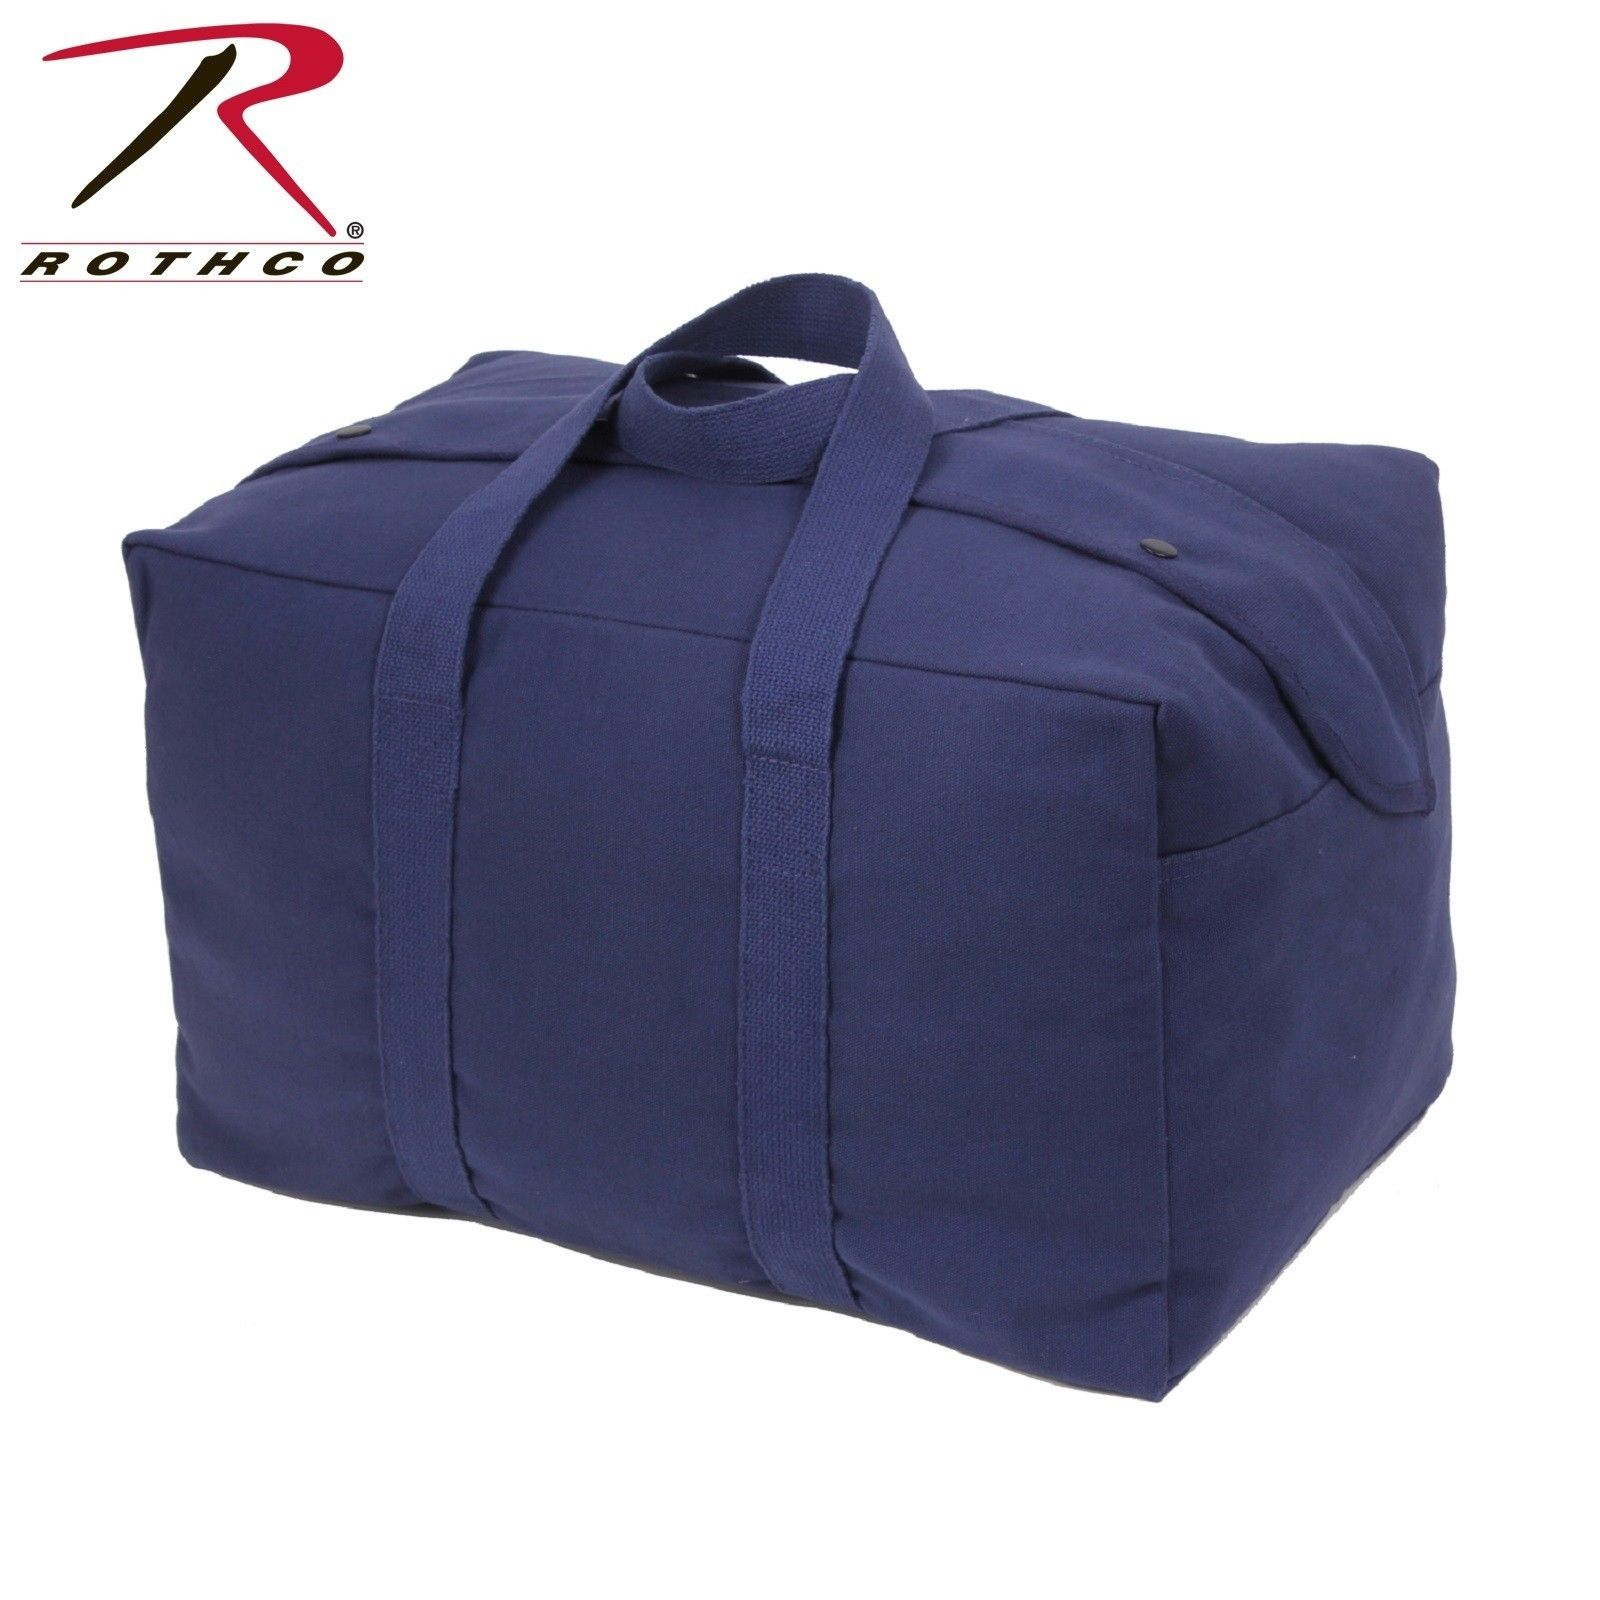 f9230c327 Navy Blue Canvas Travel Bag - Rothco Canvas Small Parachute Tactical ...